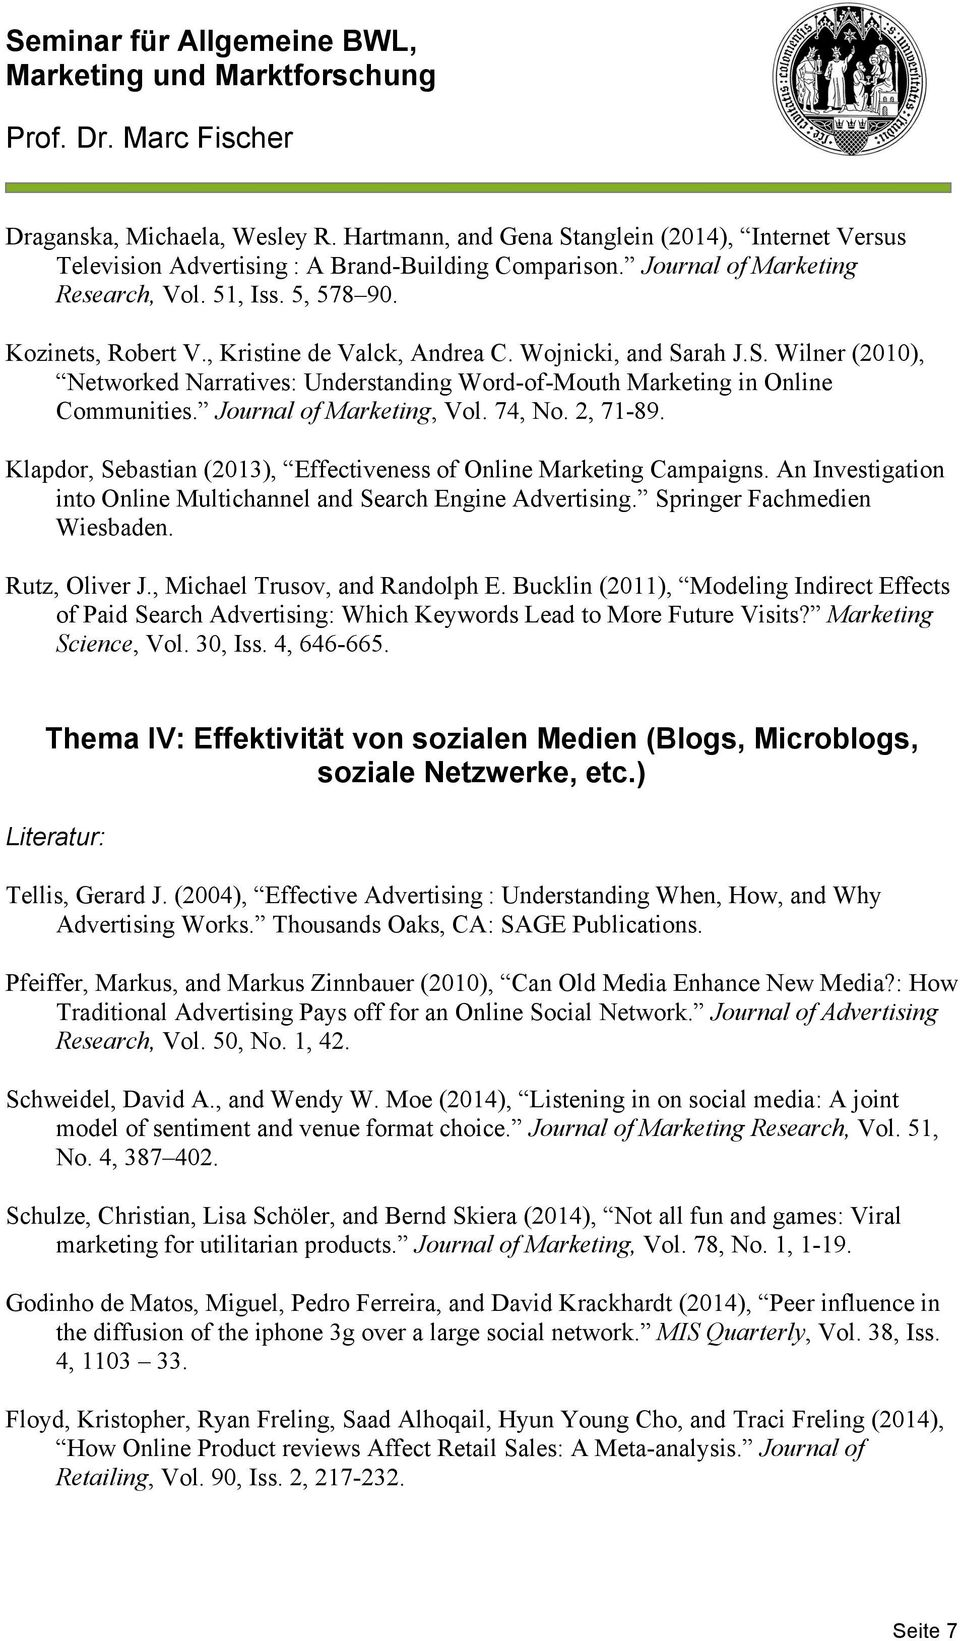 74, No. 2, 71-89. Klapdor, Sebastian (2013), Effectiveness of Online Marketing Campaigns. An Investigation into Online Multichannel and Search Engine Advertising. Springer Fachmedien Wiesbaden.